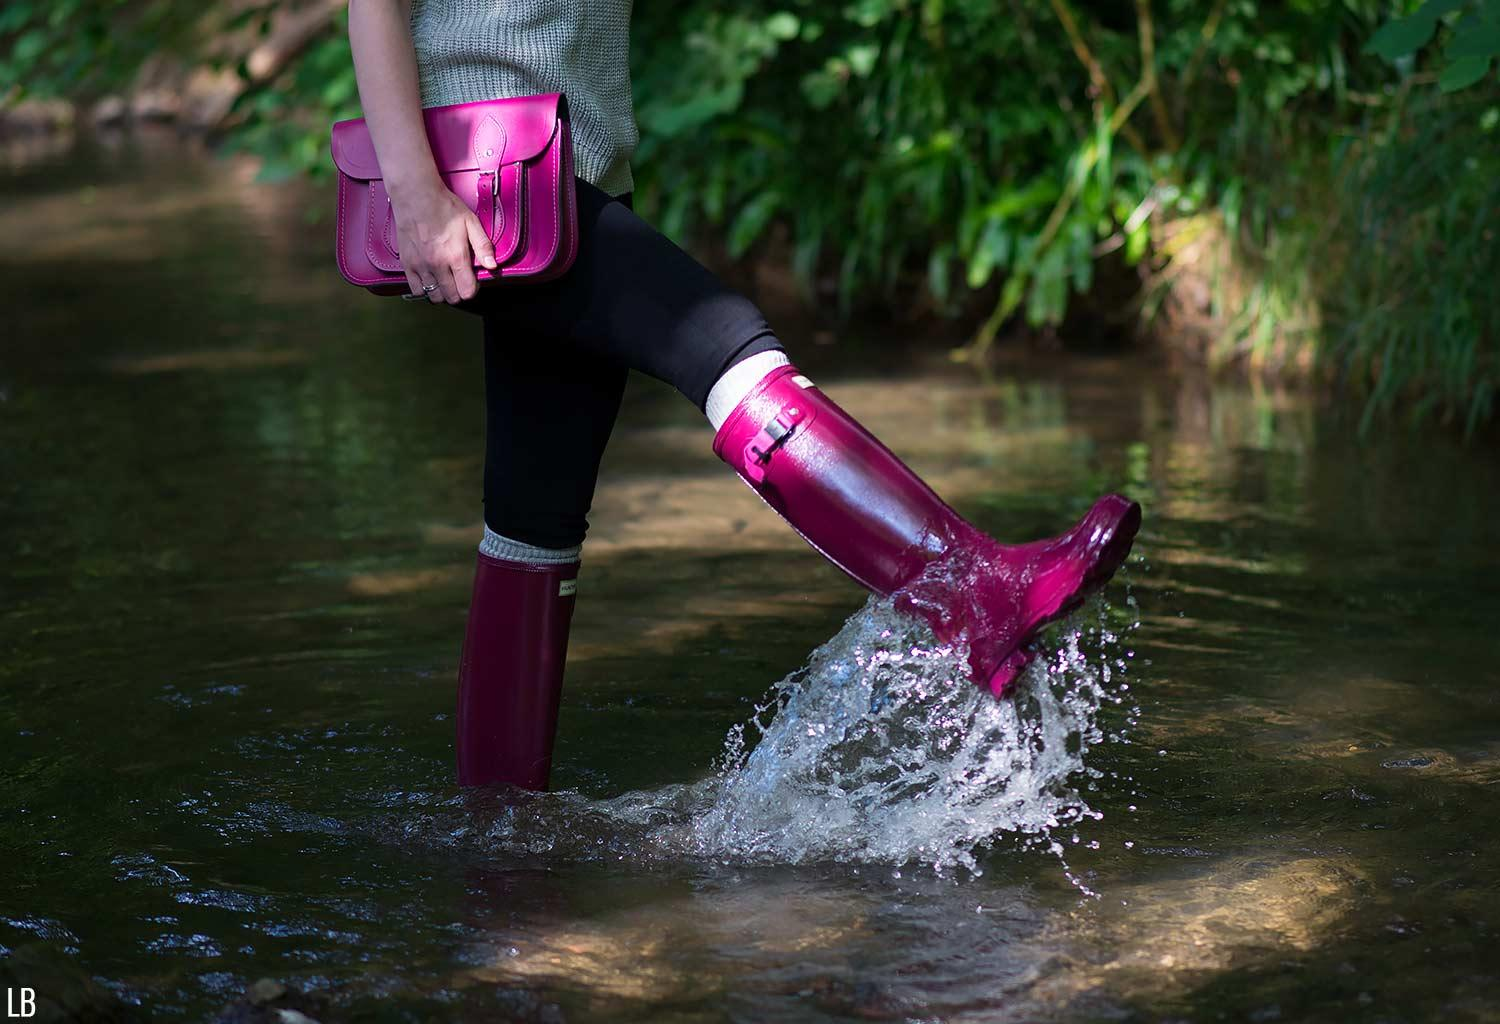 girl splashing in wellies water rain